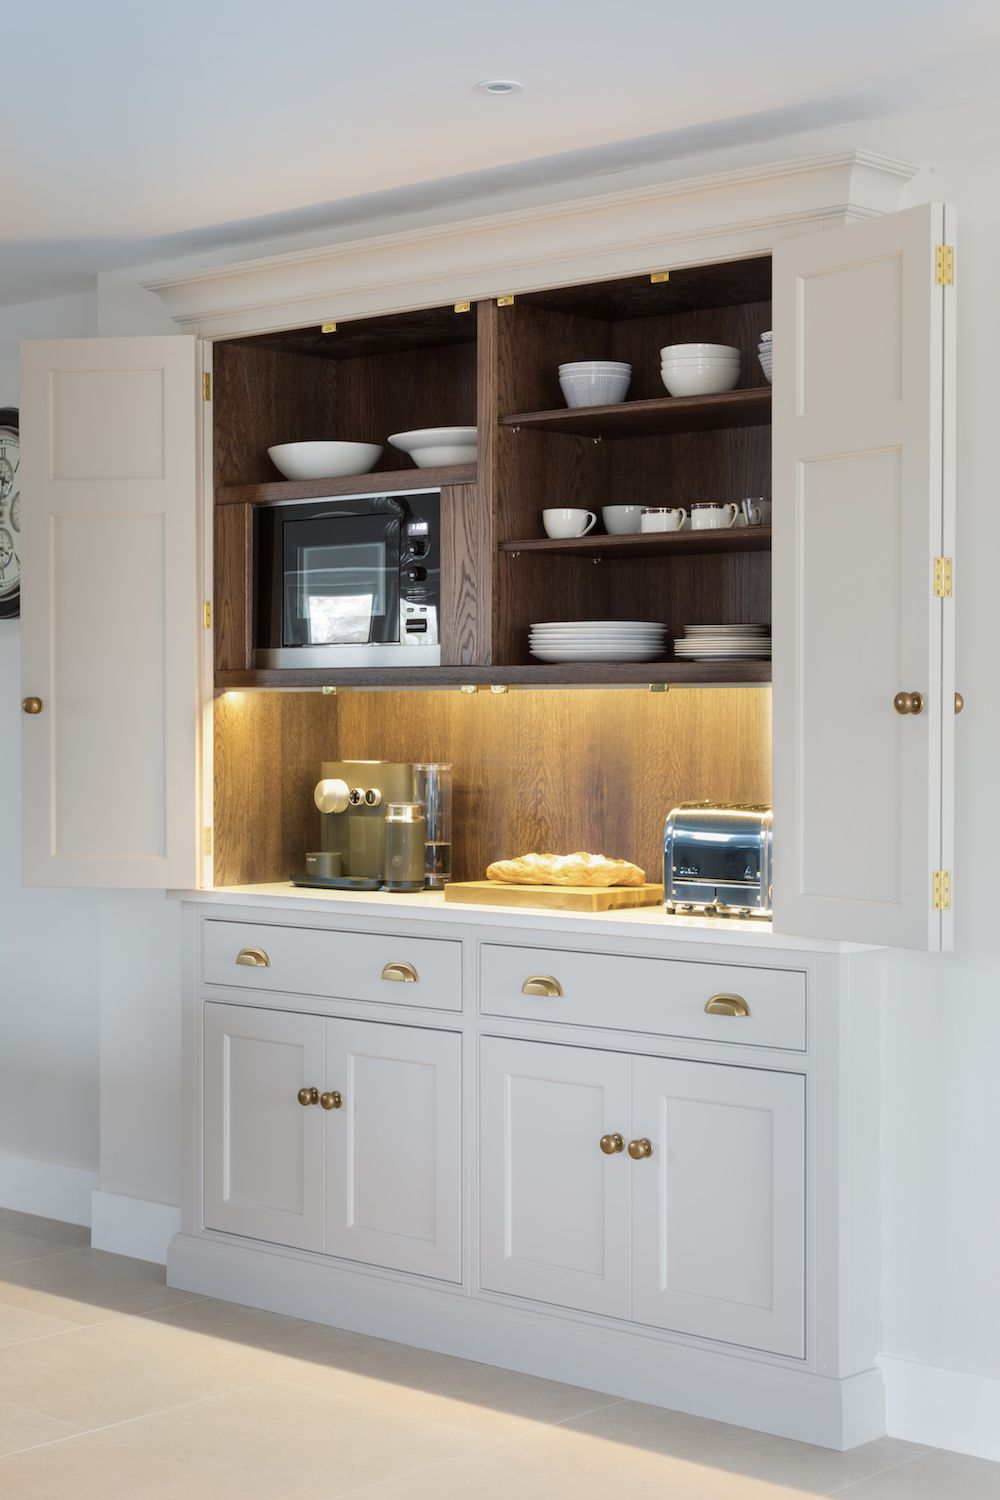 The breakfast pantry  A handy spot to keep the toaster and coffee machine and have everything